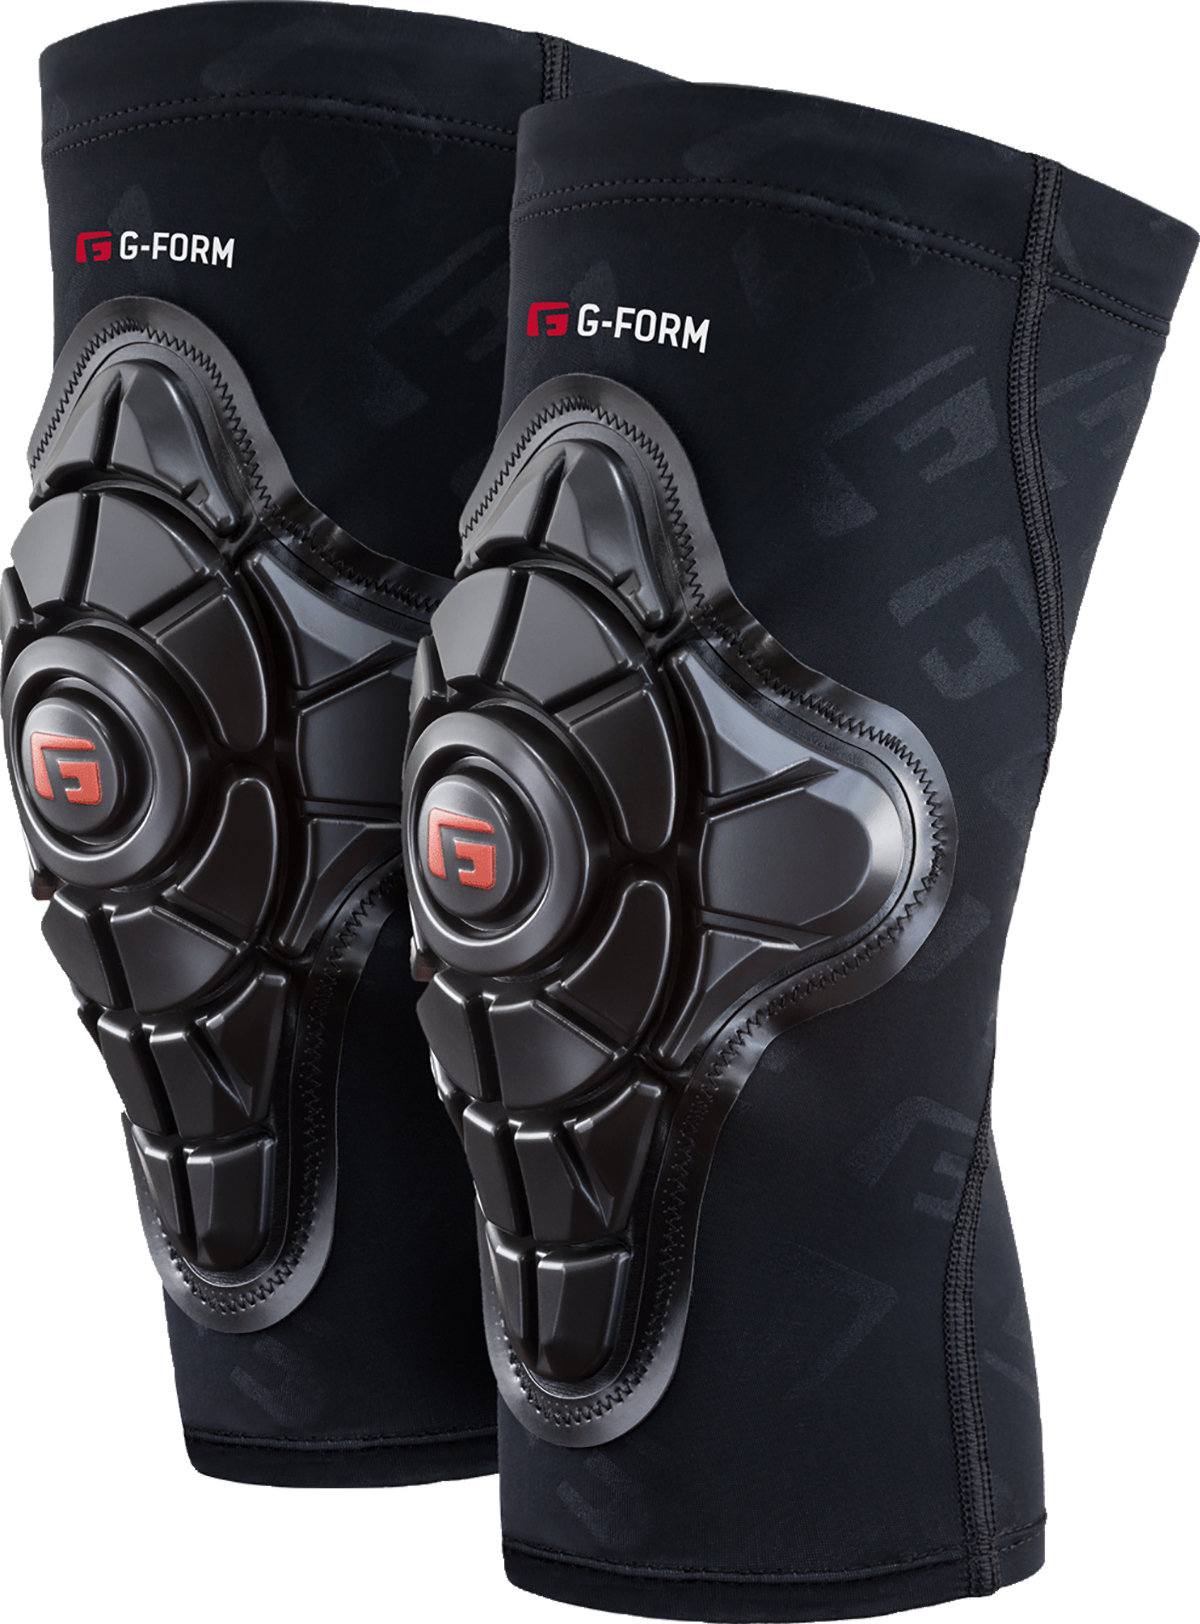 G-form - Pro-X | body amour